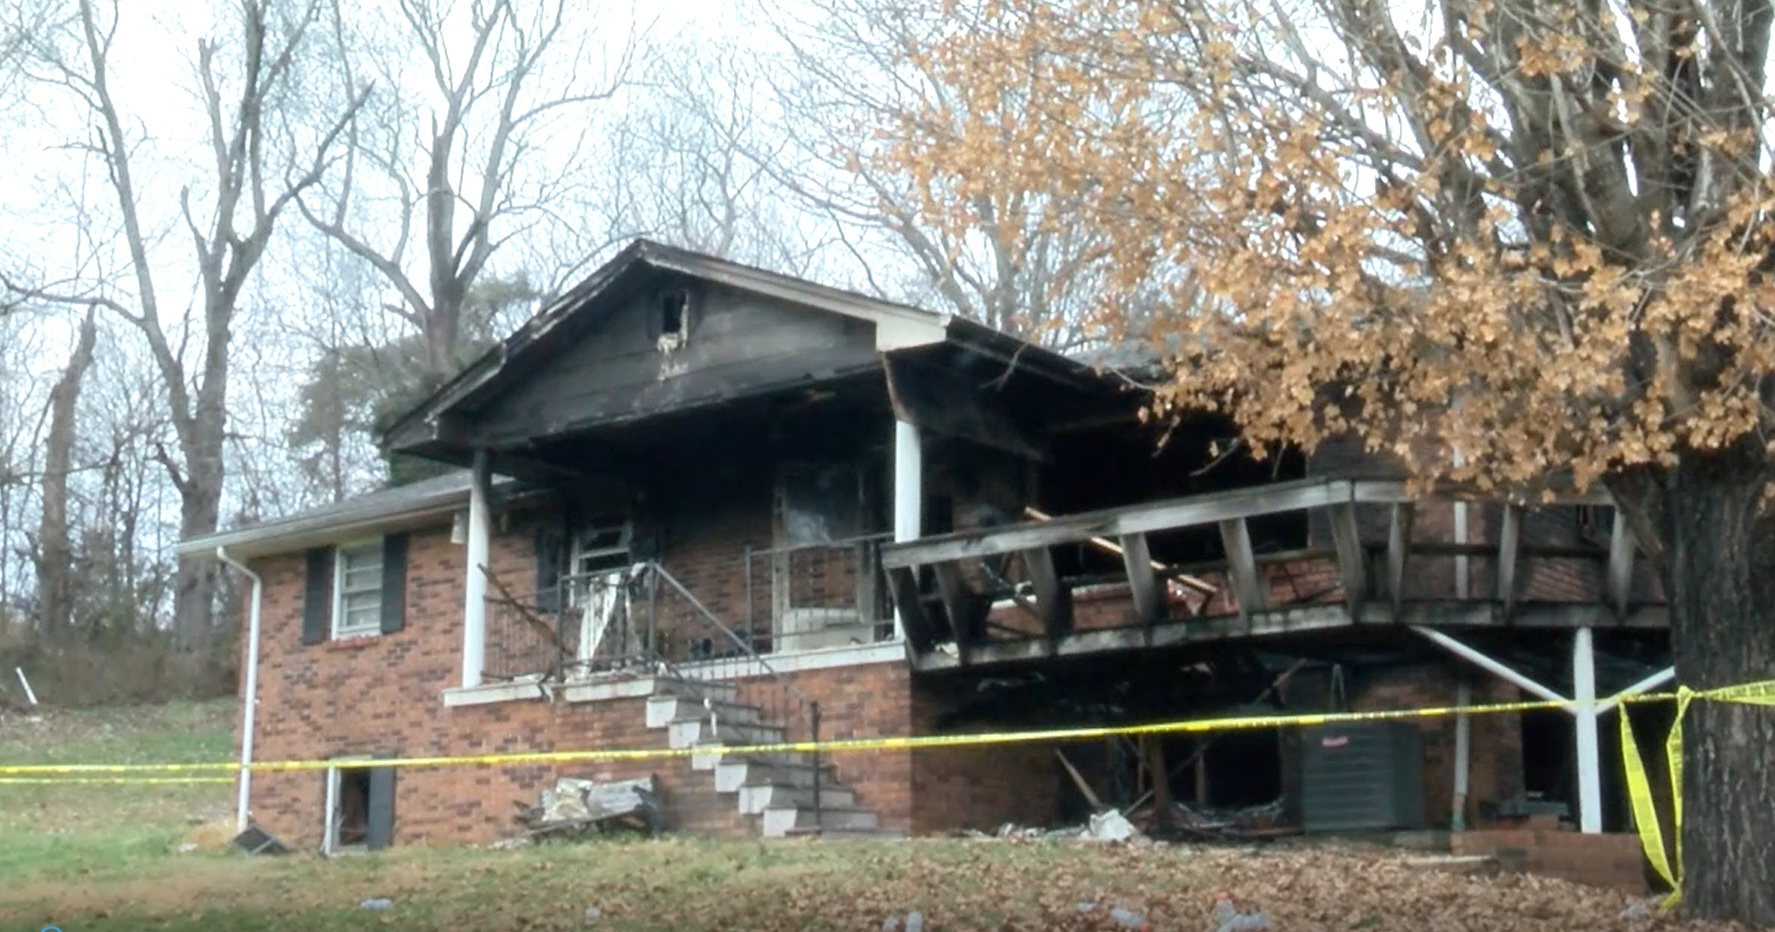 Sullivan County Sheriff's deputies are investigating a house fire in Blountville, Tennessee after renters set up a moonshine still in the basement without the owner's knowledge. (Photo credit: WCYB)